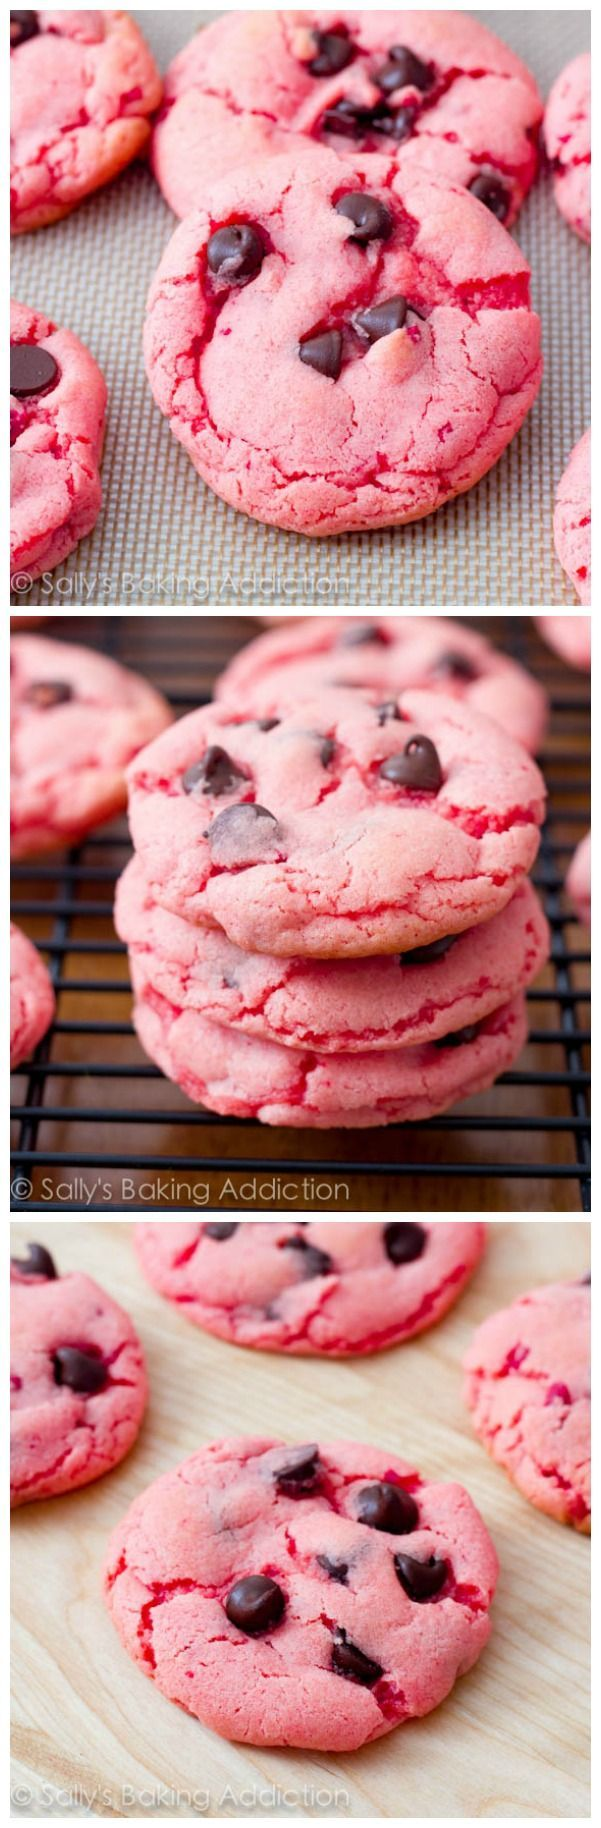 Soft Baked Strawberry Chocolate Chip Cookies For Valentines Day